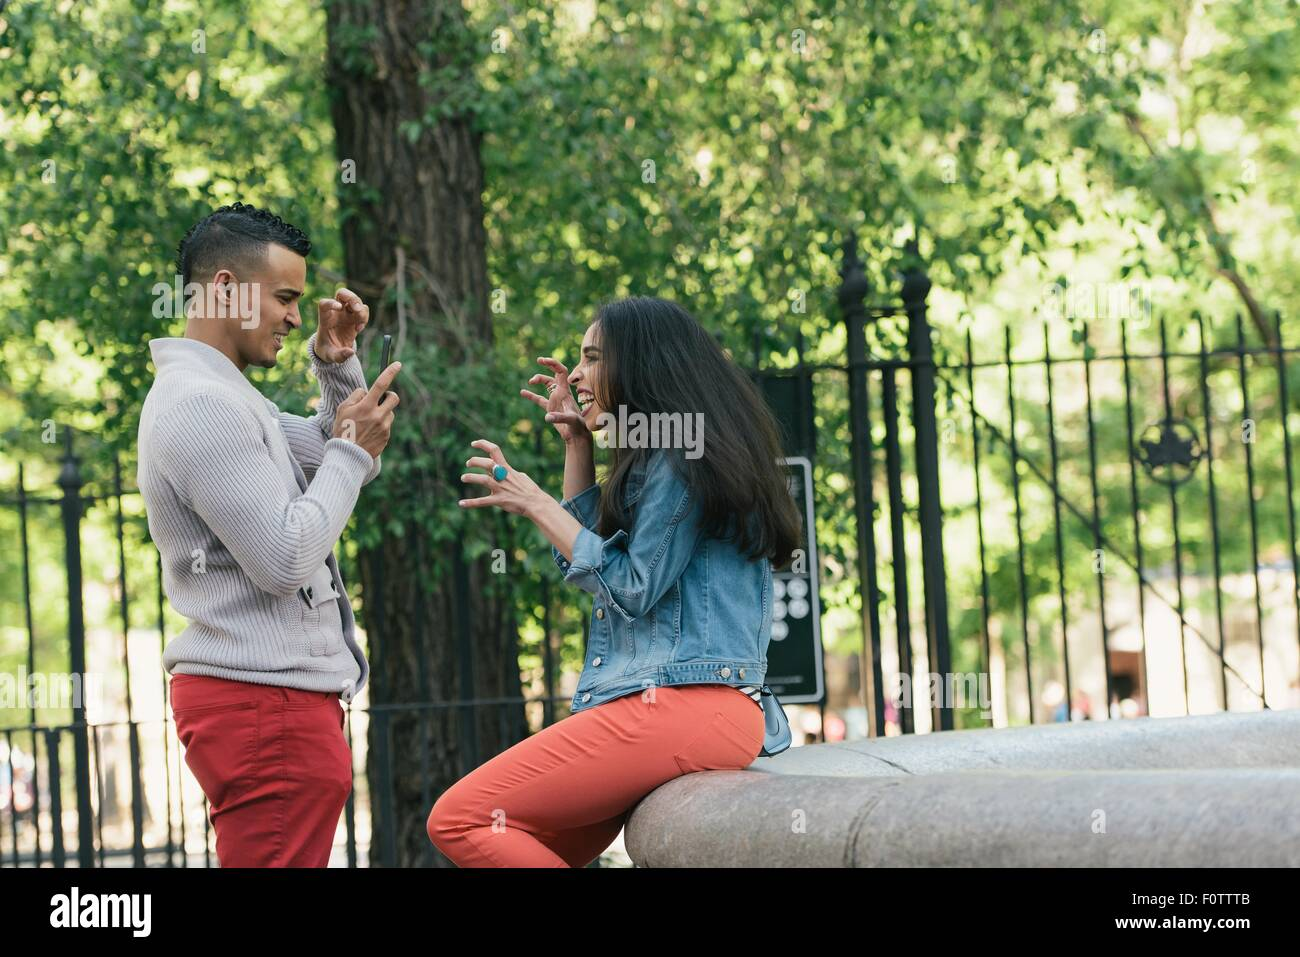 Mid adult man taking smartphone photograph of girlfriend in city park - Stock Image